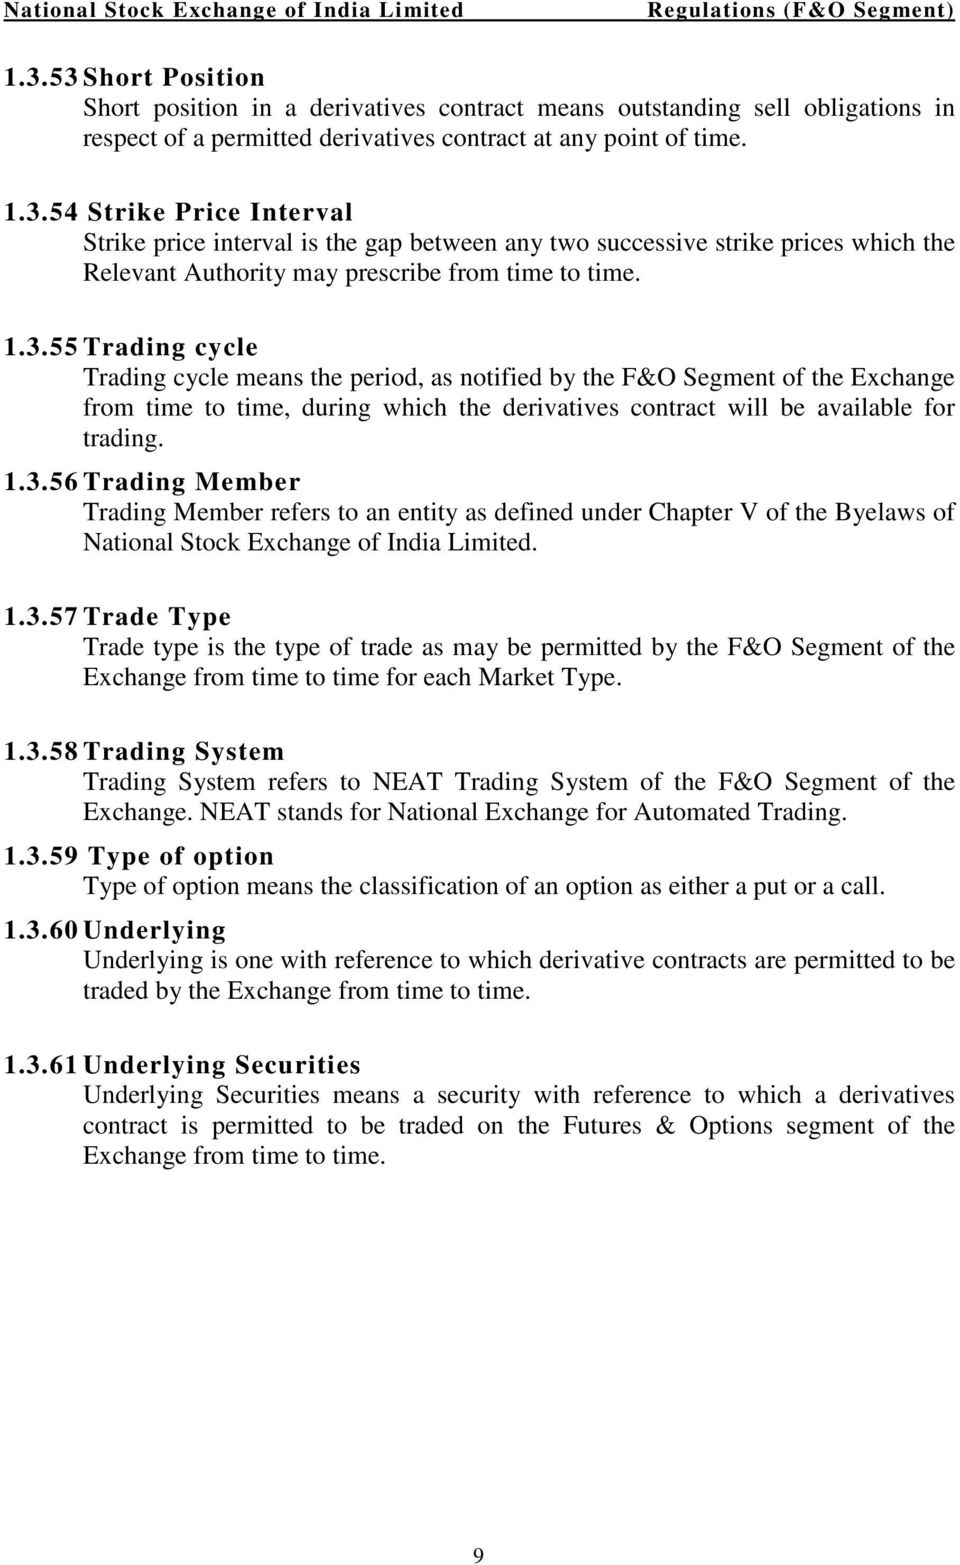 1.3.57 Trade Type Trade type is the type of trade as may be permitted by the F&O Segment of the Exchange from time to time for each Market Type. 1.3.58 Trading System Trading System refers to NEAT Trading System of the F&O Segment of the Exchange.